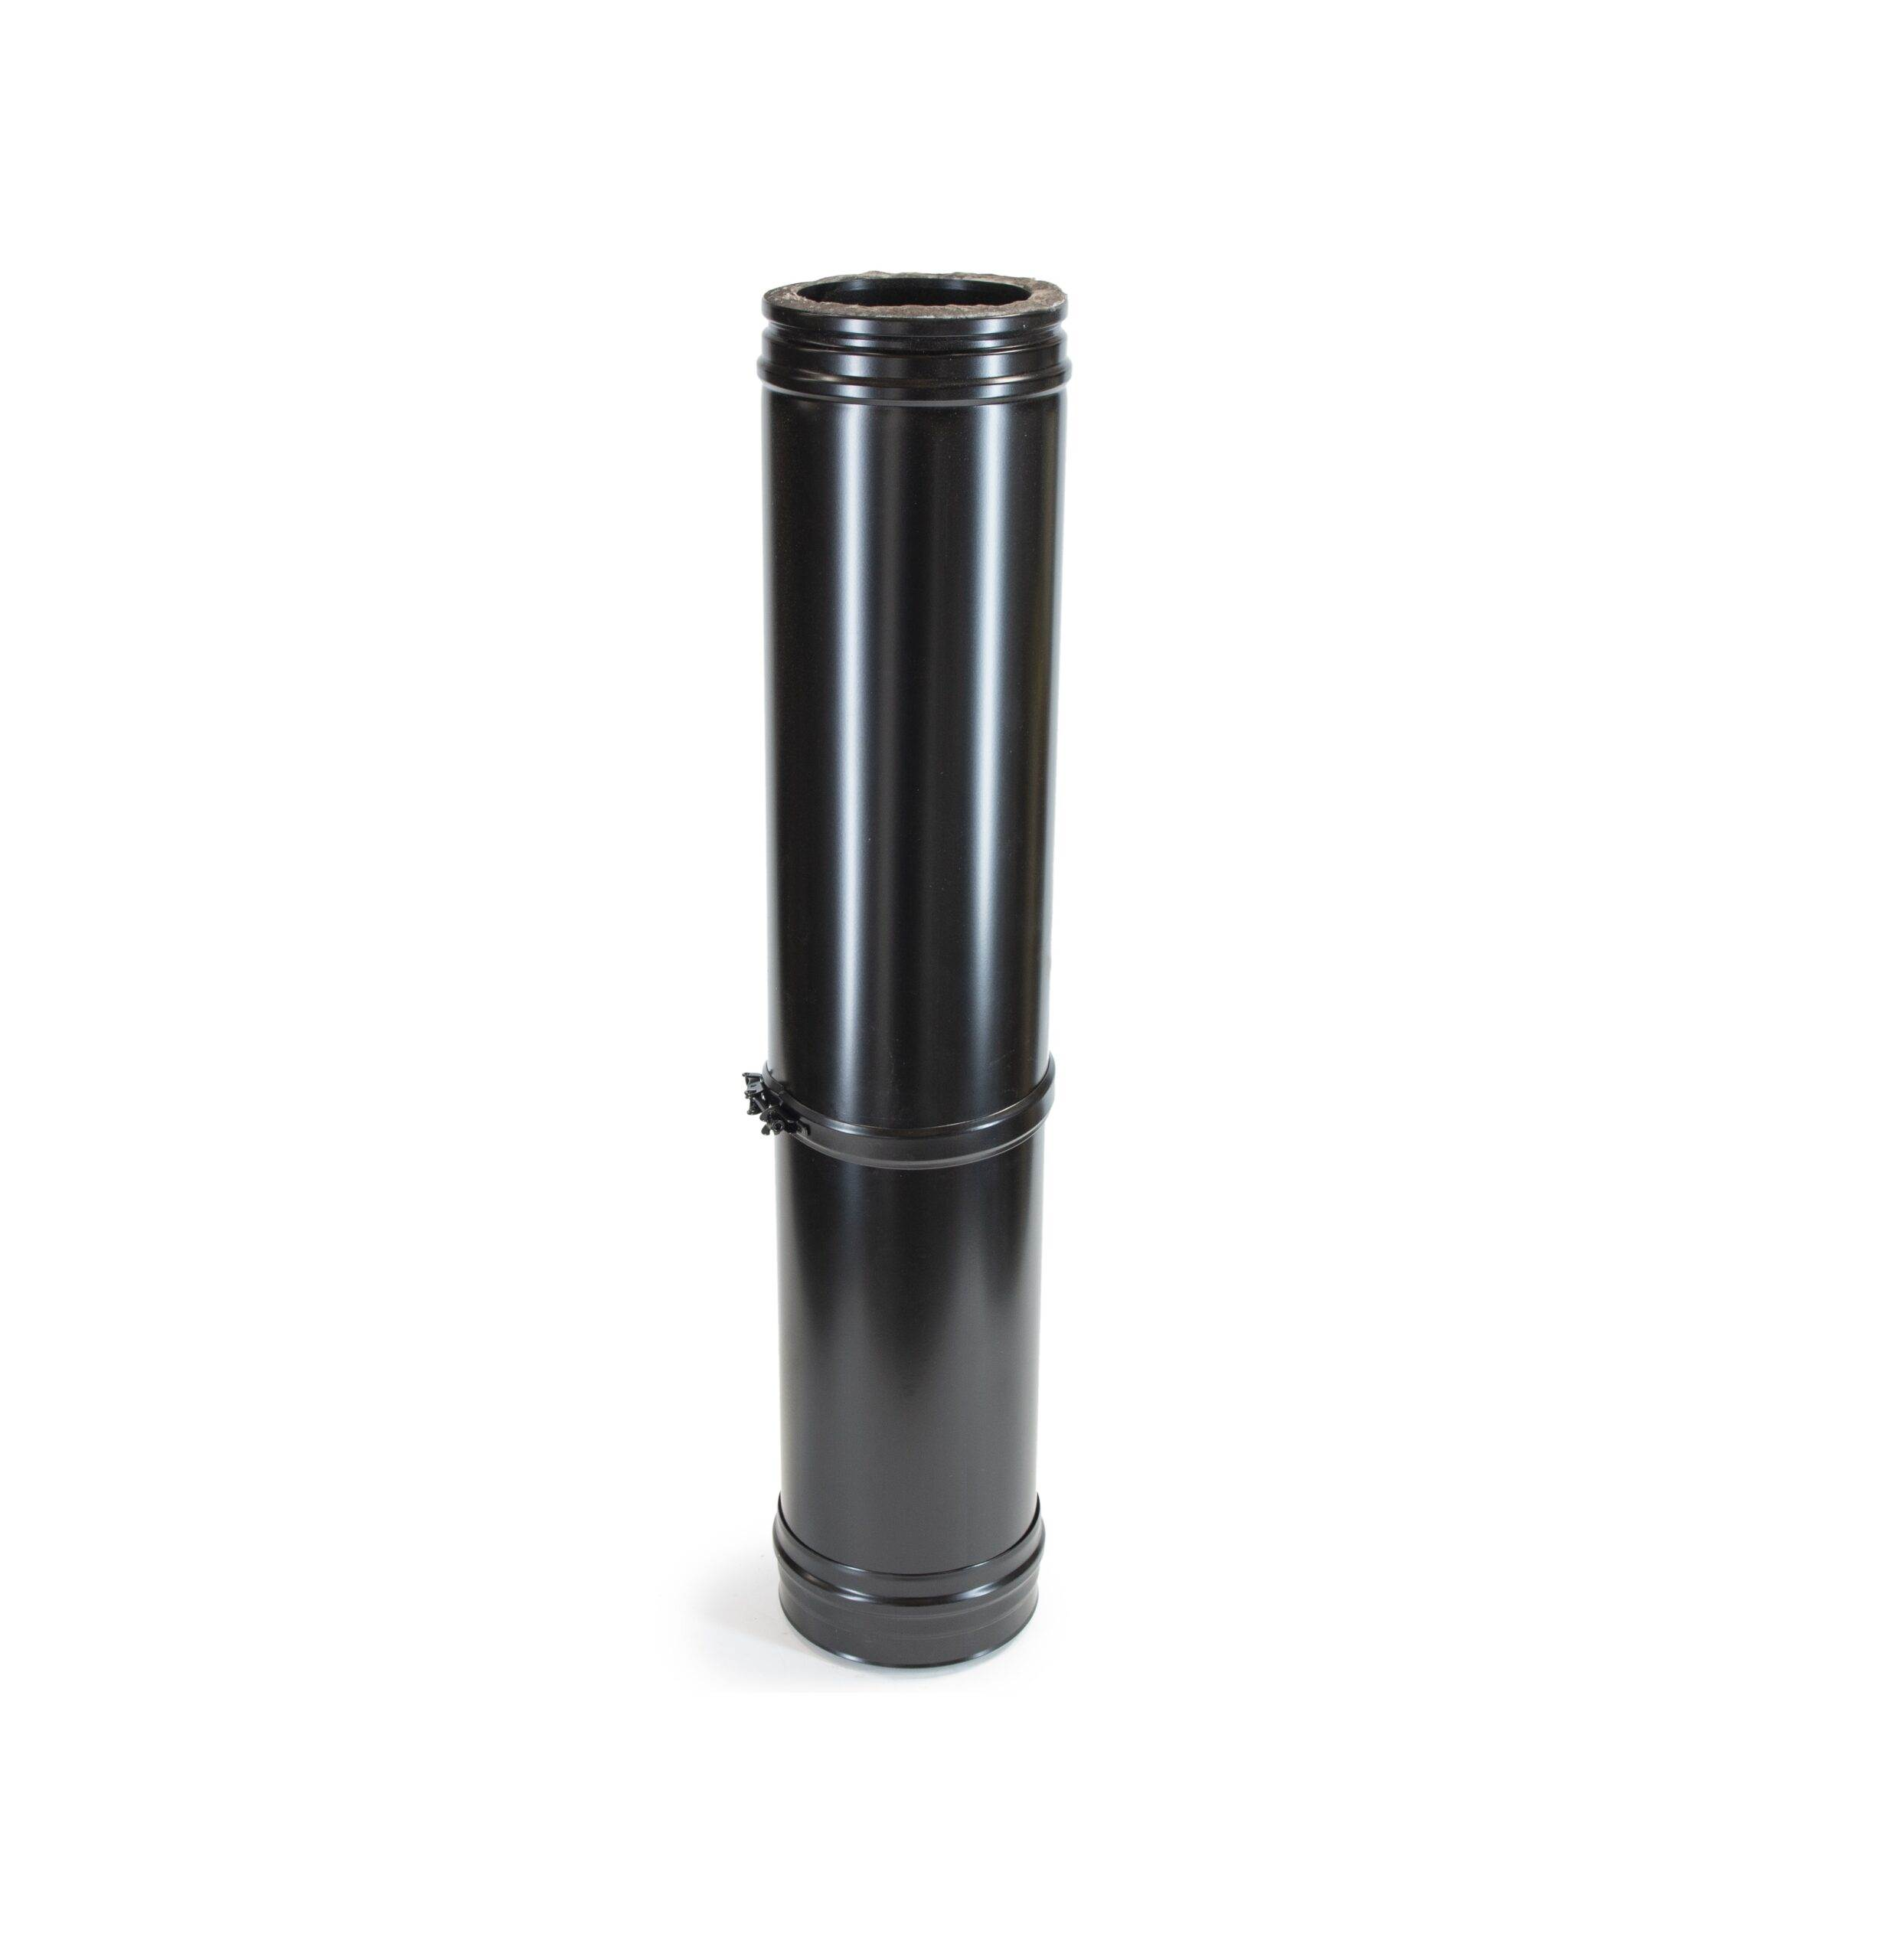 Adjustable Length 585-1005mm - Schiedel ICS Twin Wall Flue - Black Powder Coated